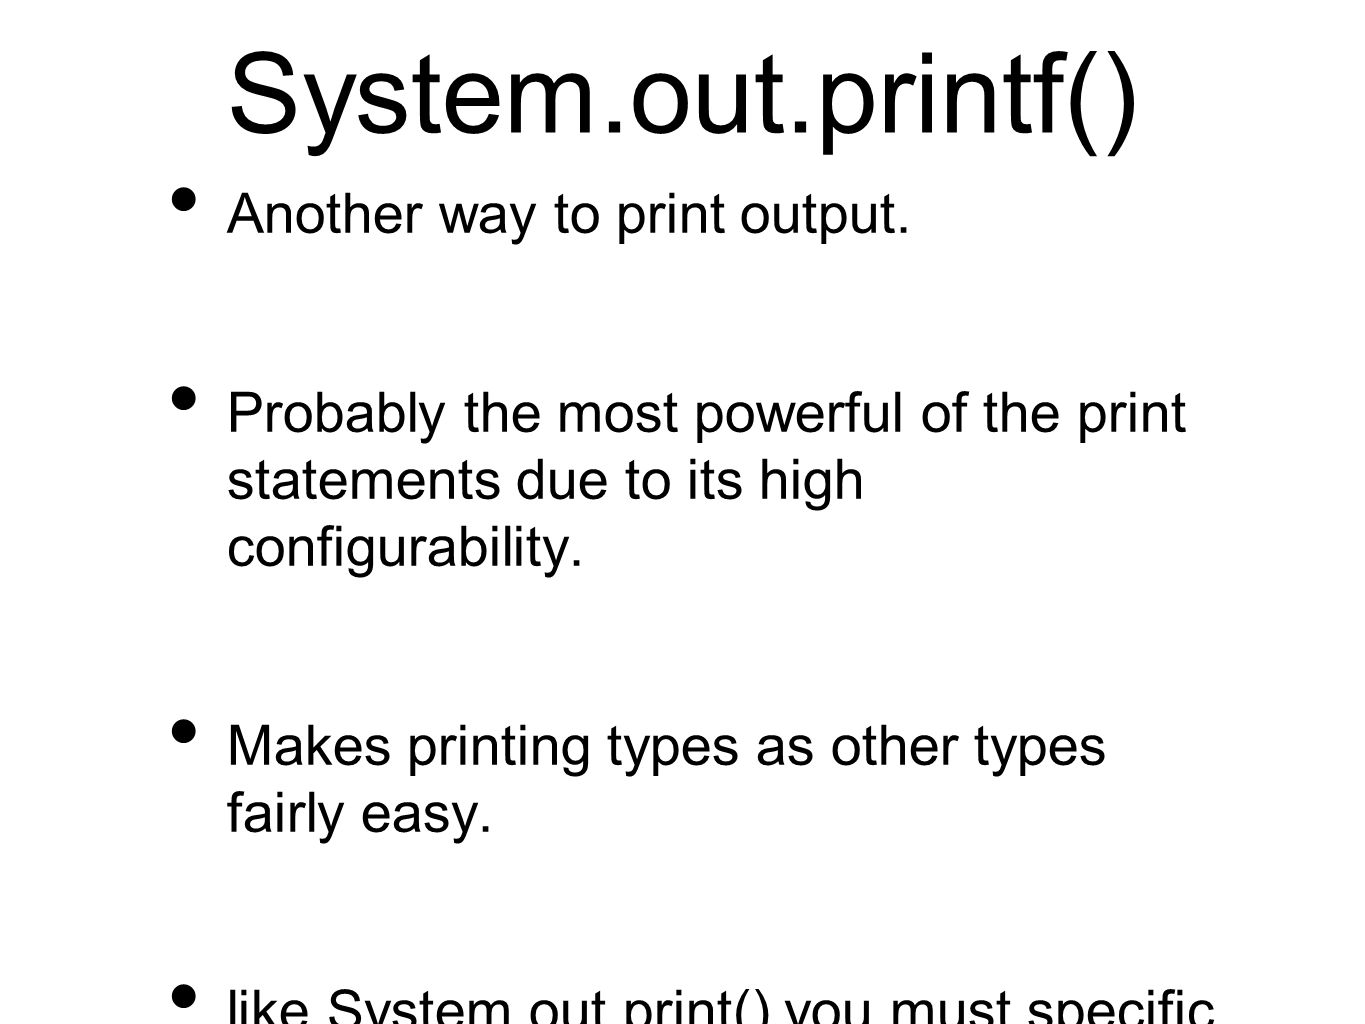 System.out.printf() Another way to print output.